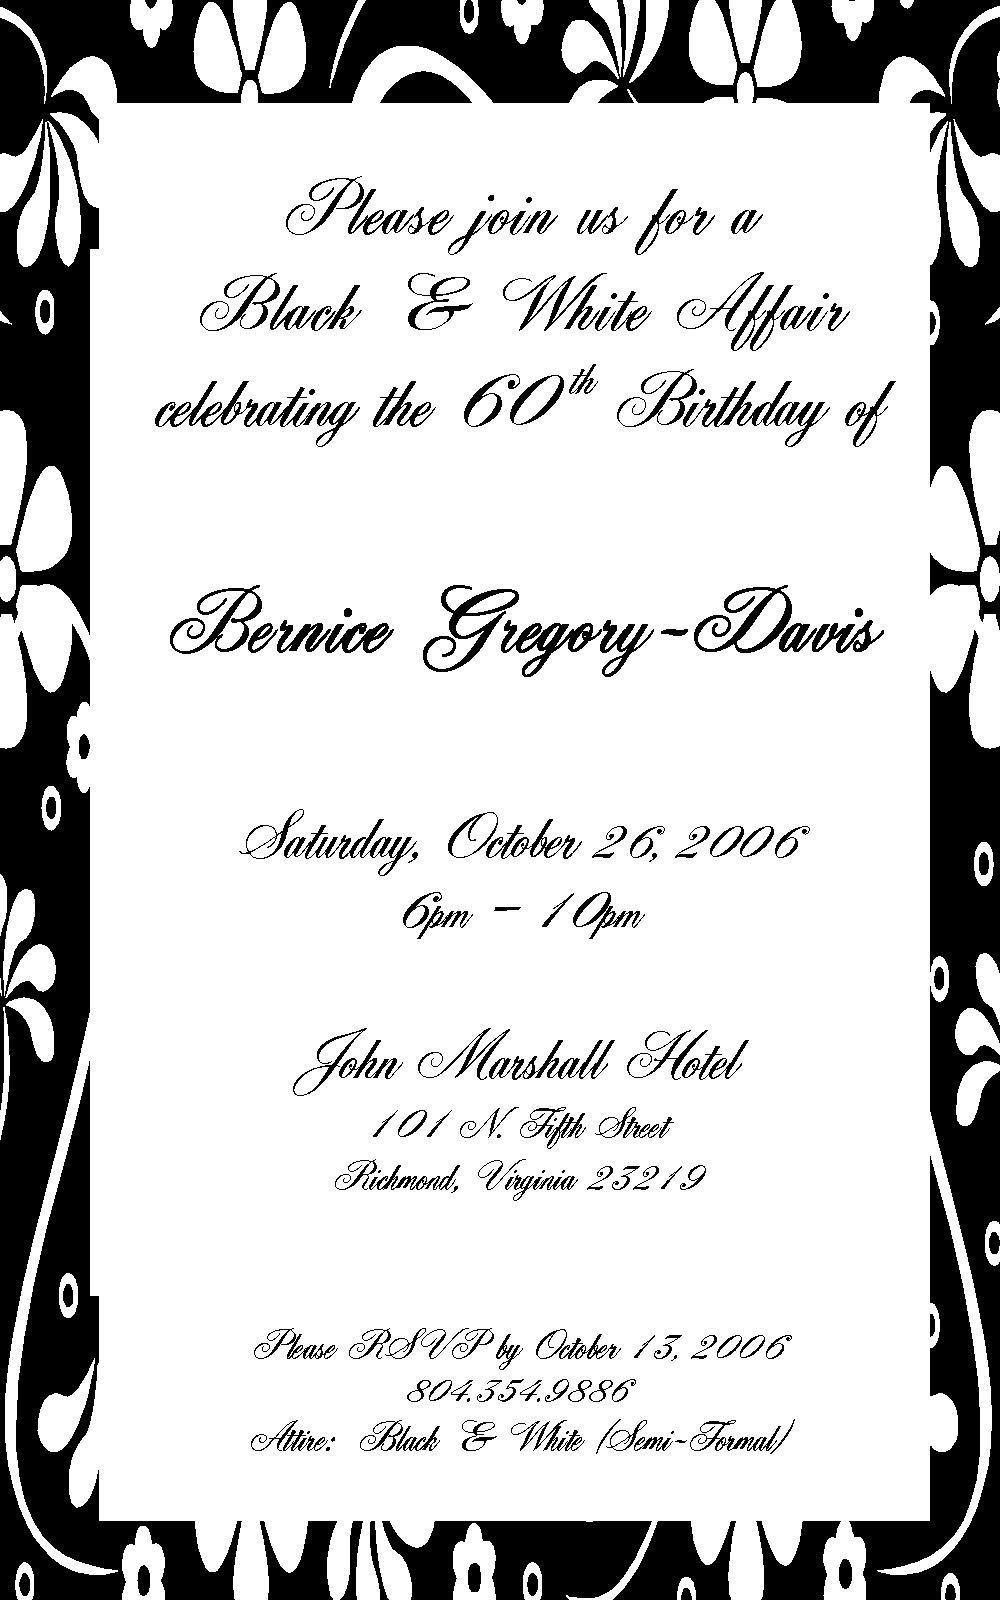 Birthday Party Invitation Wording Samples Adults  Dinner